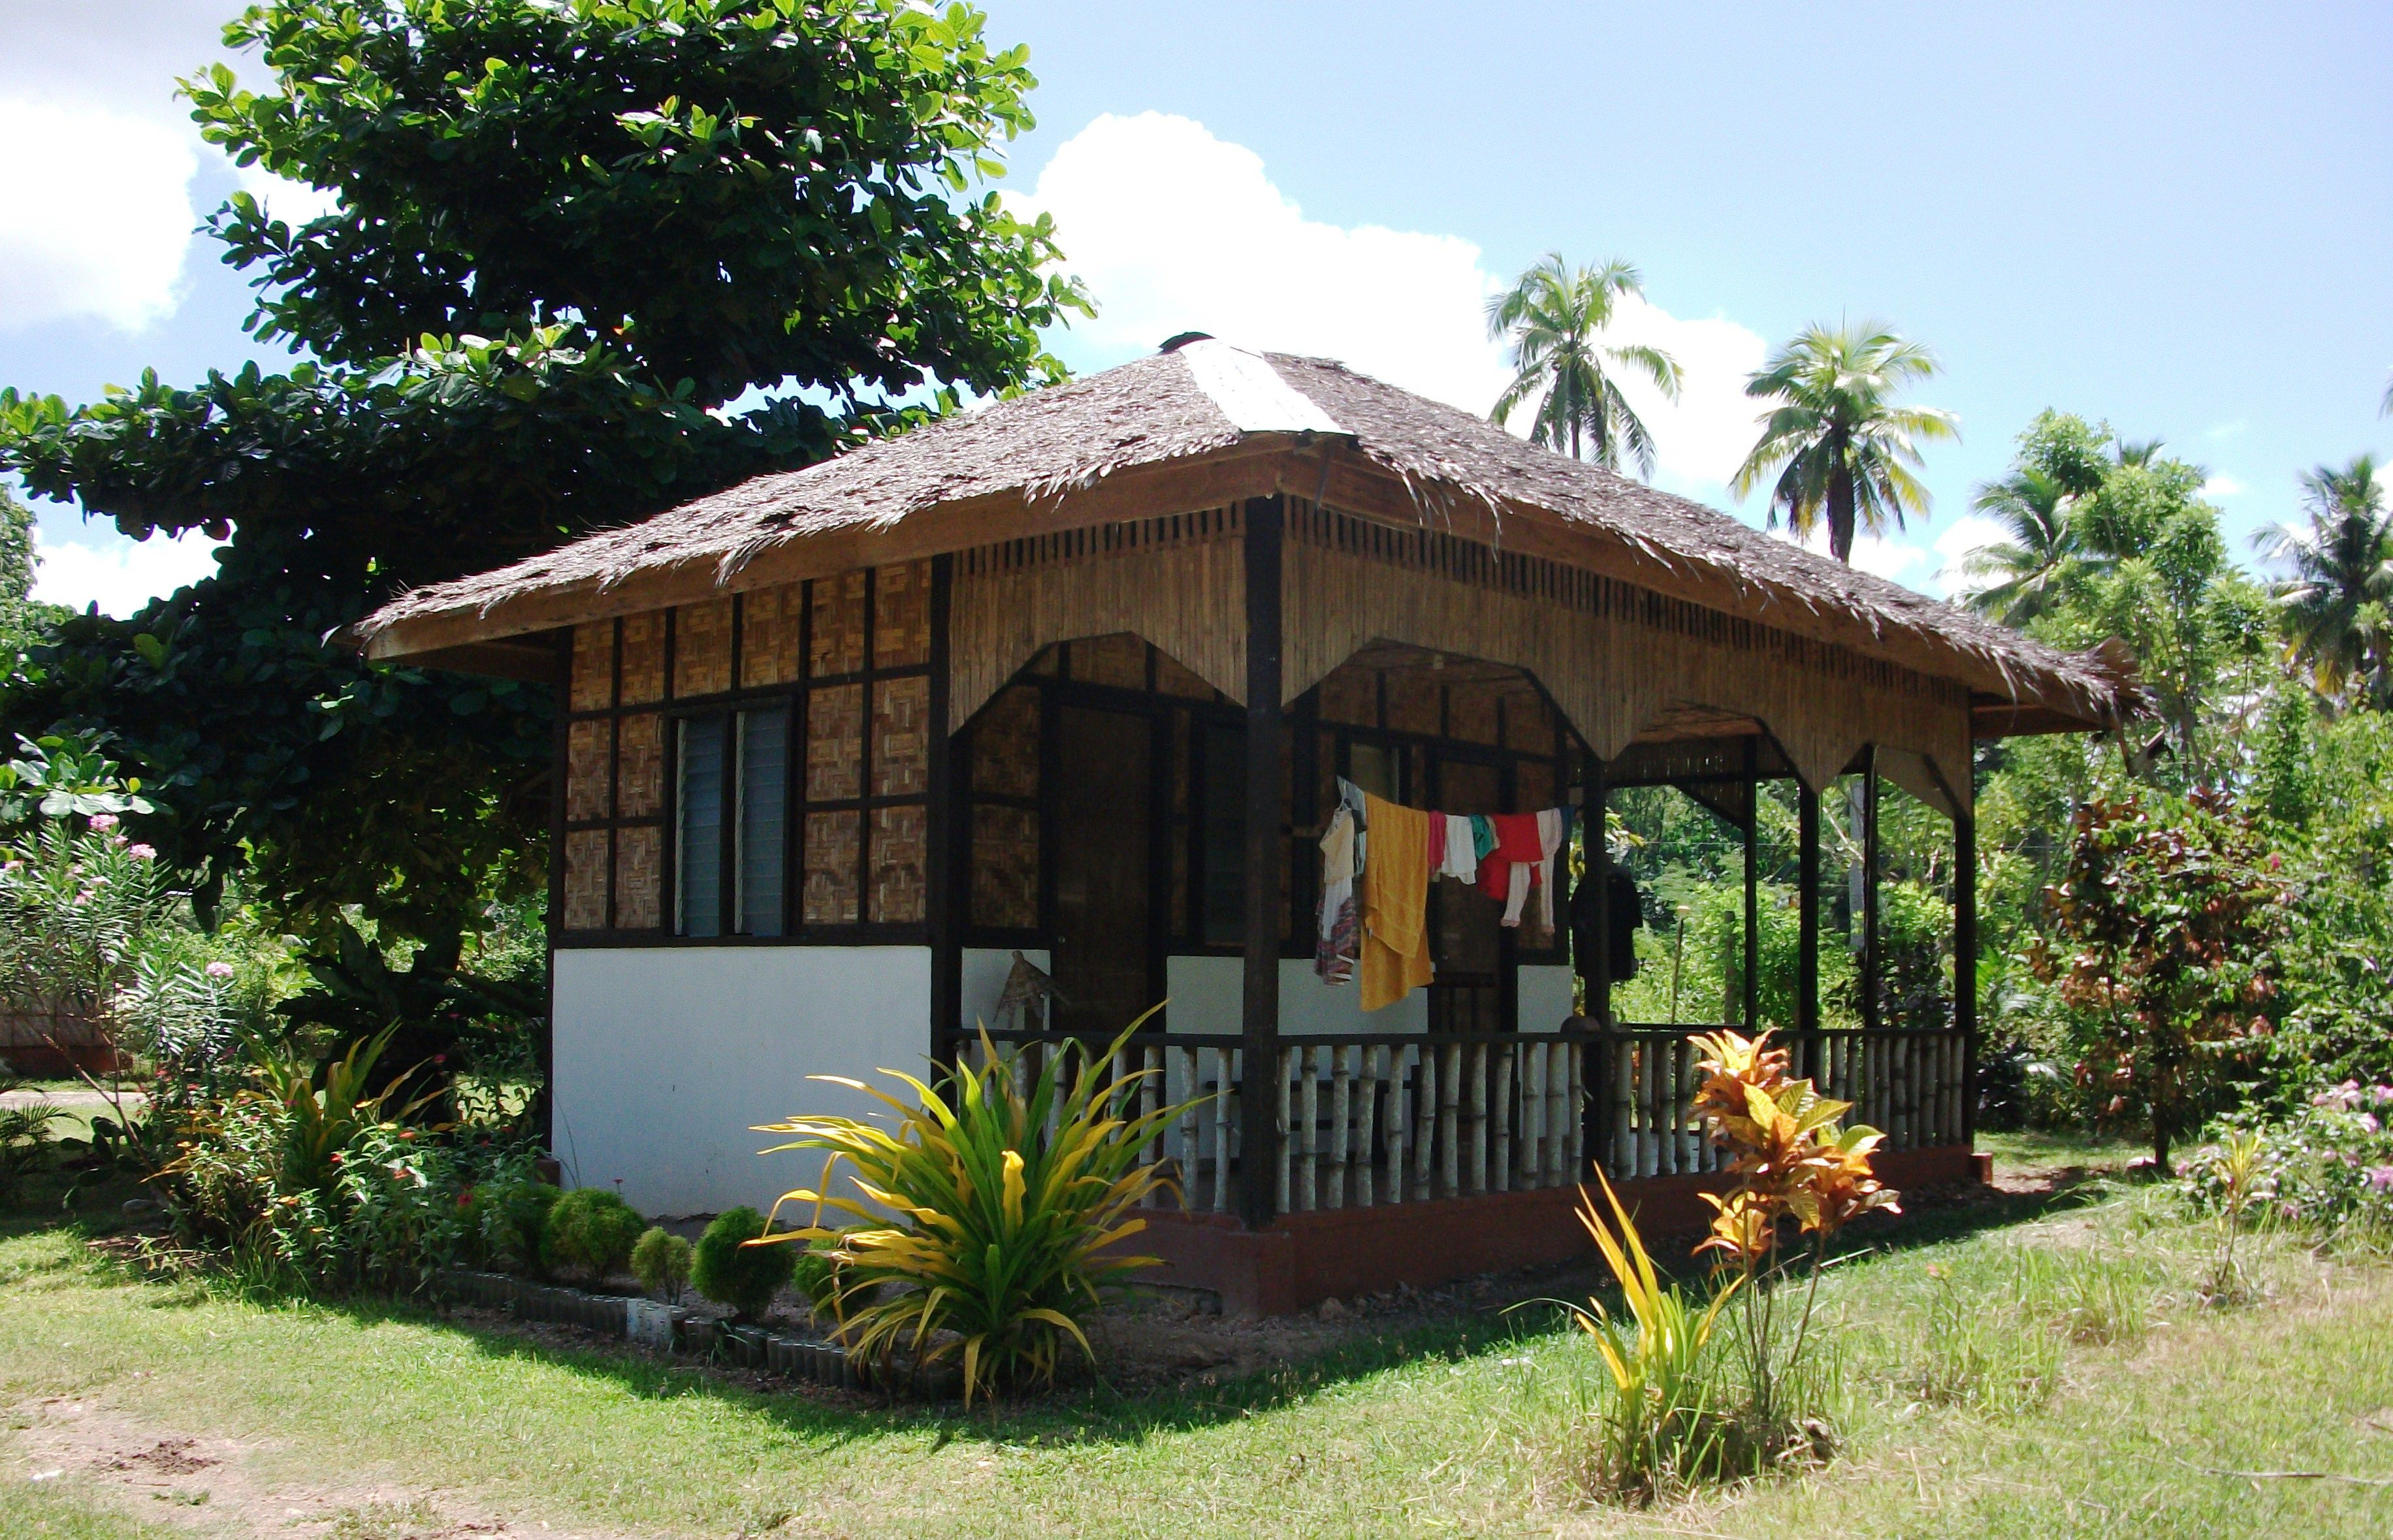 0569ccce1f19d5ce924e8d24cedbfb23 - 38+ Small Native House Design Philippines  Gif